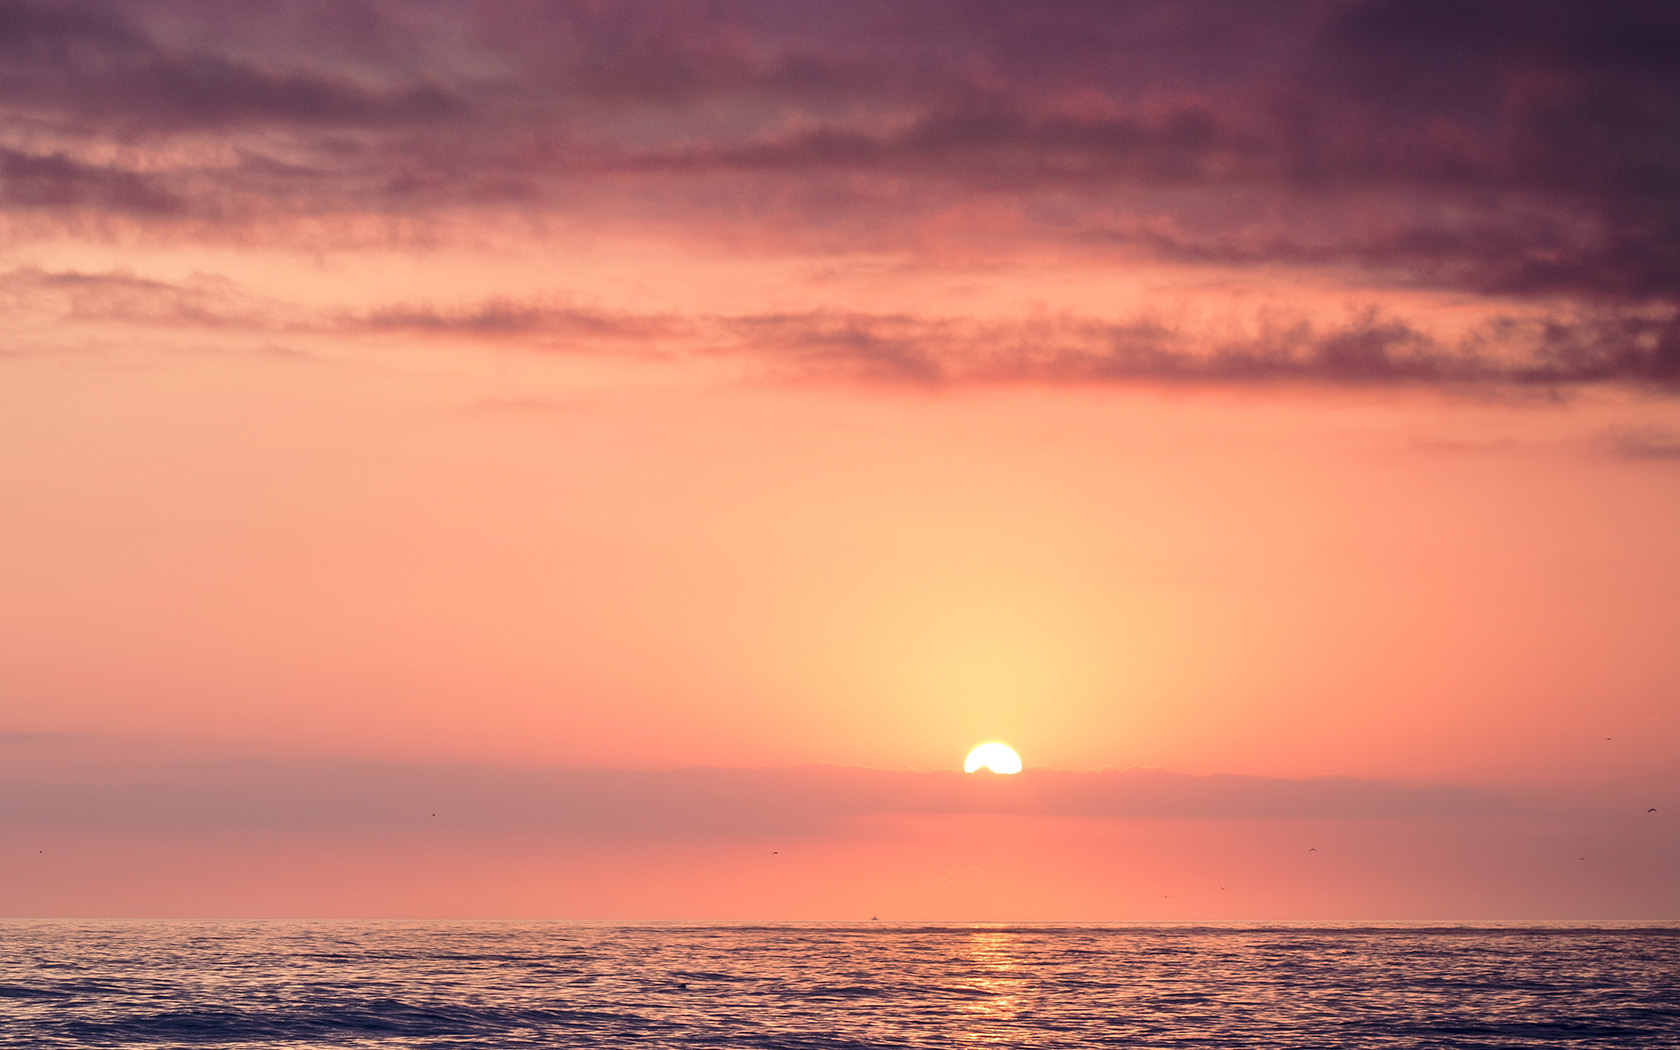 mx95-sunset-sea-beach-sky-shine-wallpaper